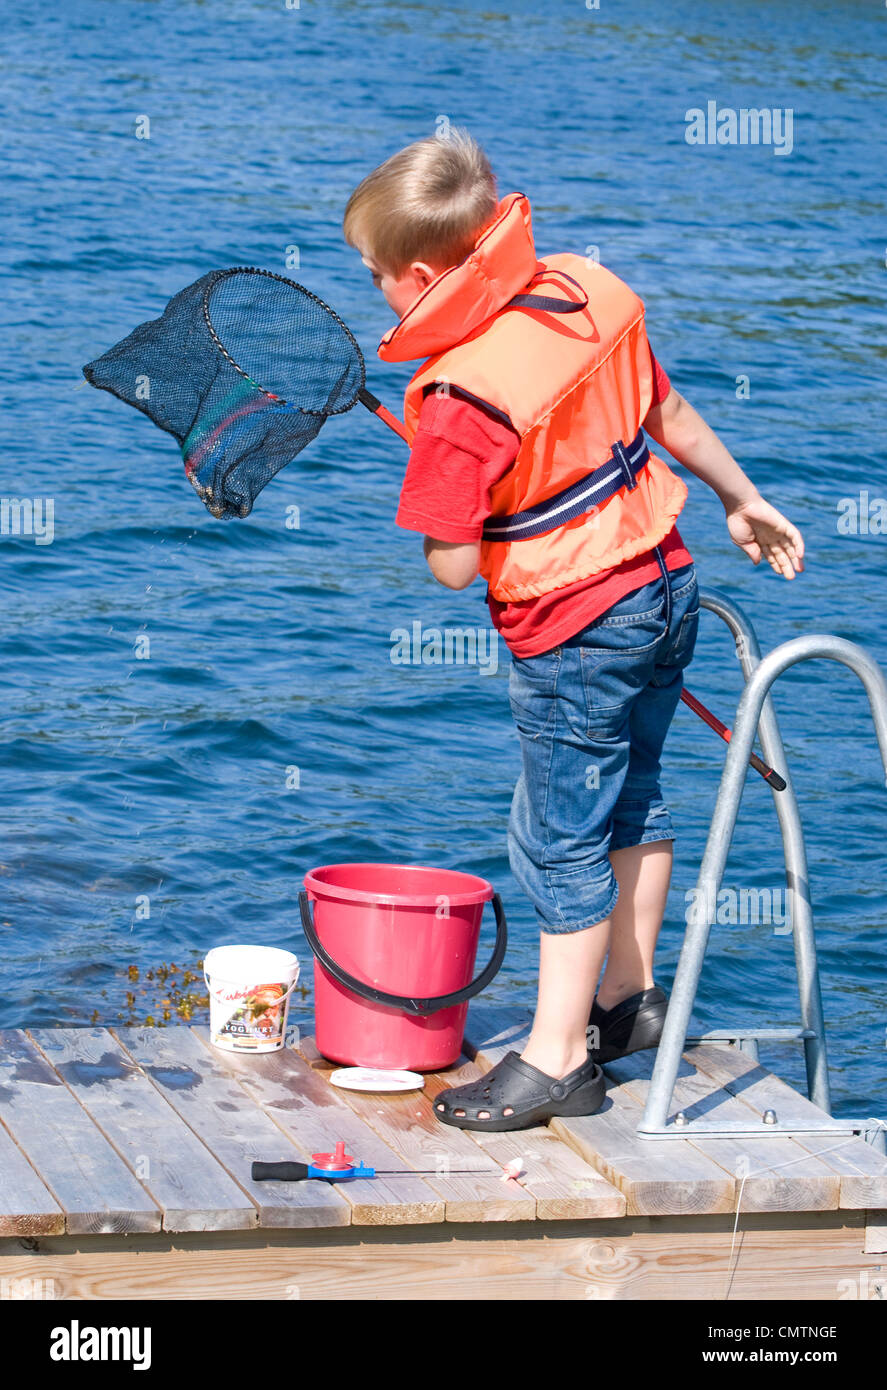 Young boy wearing a lifejacket catching fish with a landing net Stock Photo